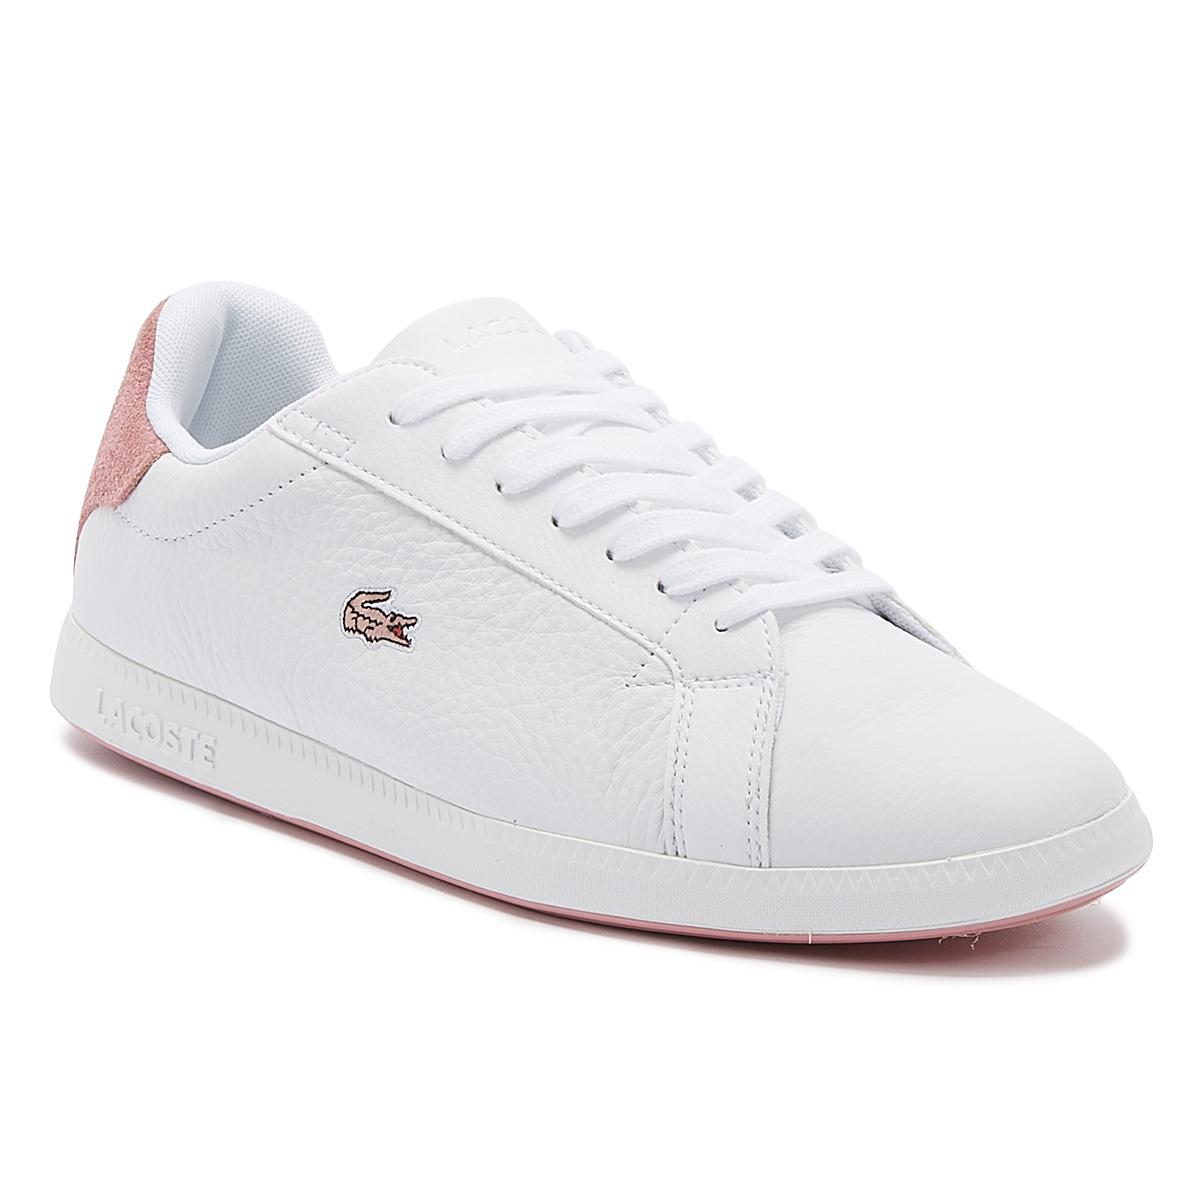 Lacoste Graduate 319 White Pink Womens Leather Trainers